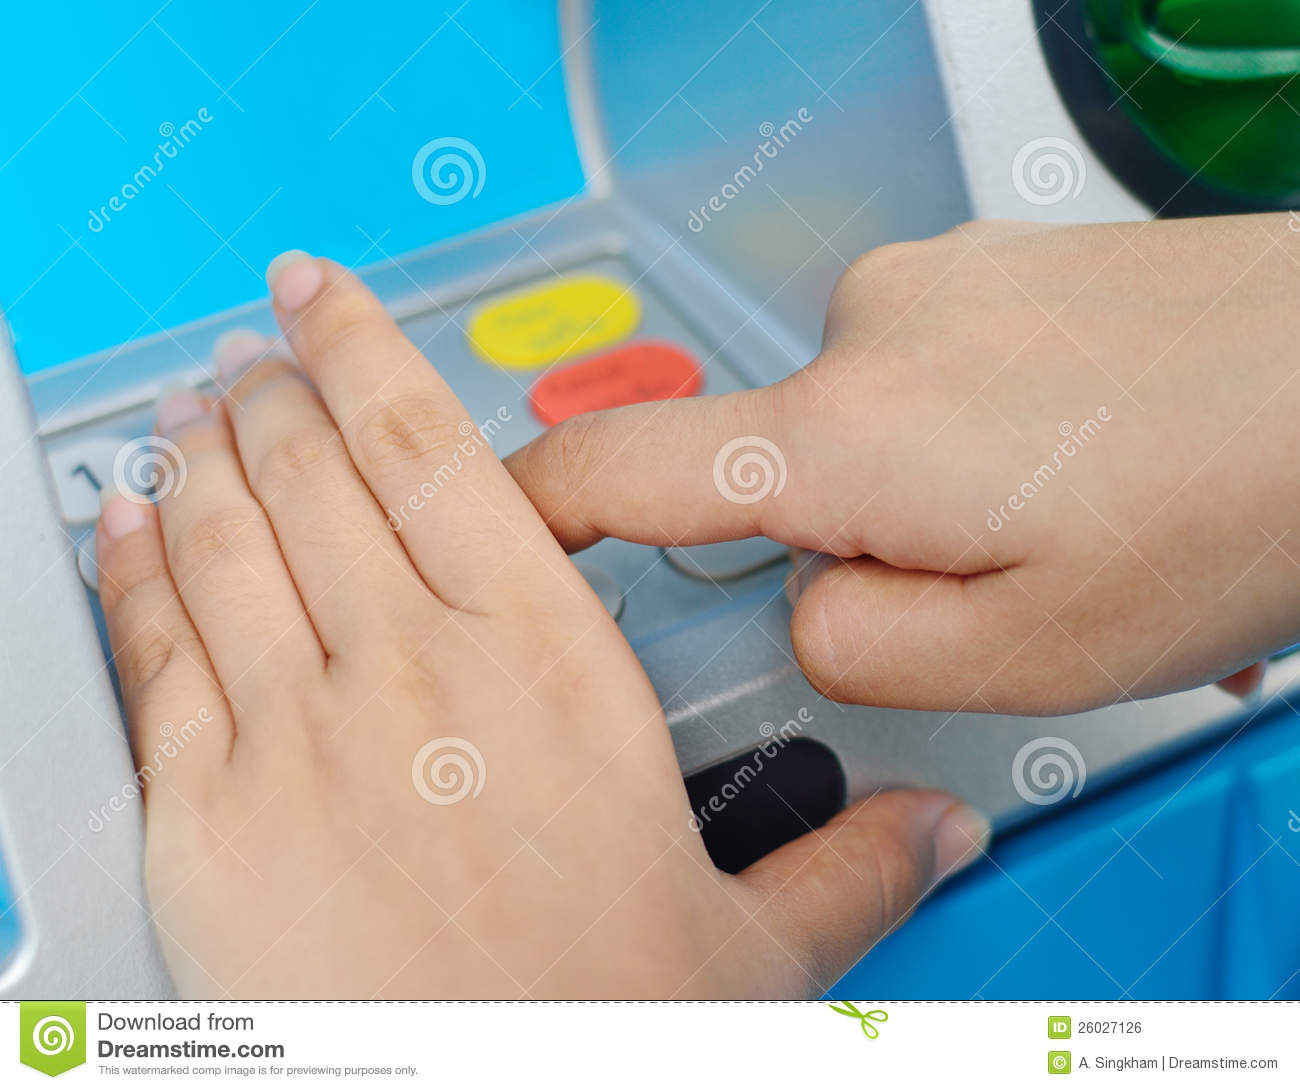 Protect of ATM pin by hands